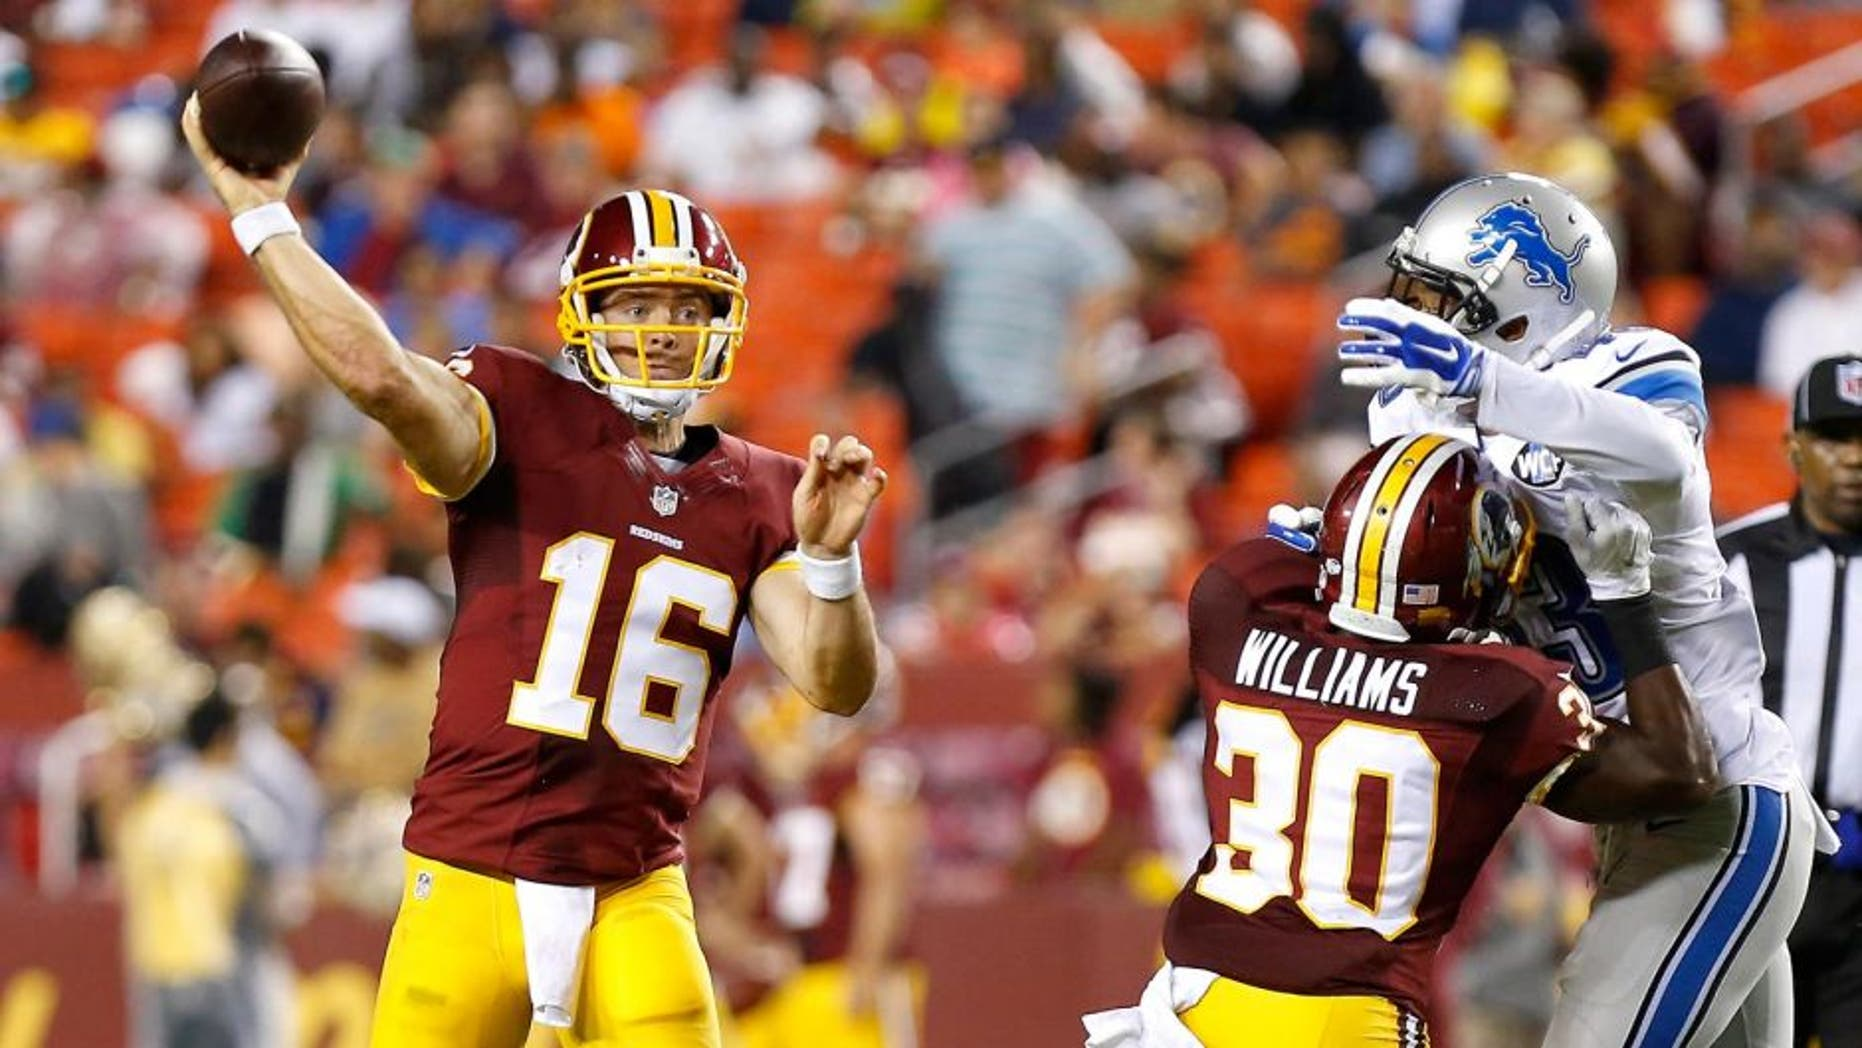 Aug 20, 2015; Landover, MD, USA; Washington Redskins quarterback Colt McCoy (16) throws the ball as Detroit Lions defensive back Isaiah Johnson (43) chases in the third quarter at FedEx Field. The Redskins won 21-17. Mandatory Credit: Geoff Burke-USA TODAY Sports